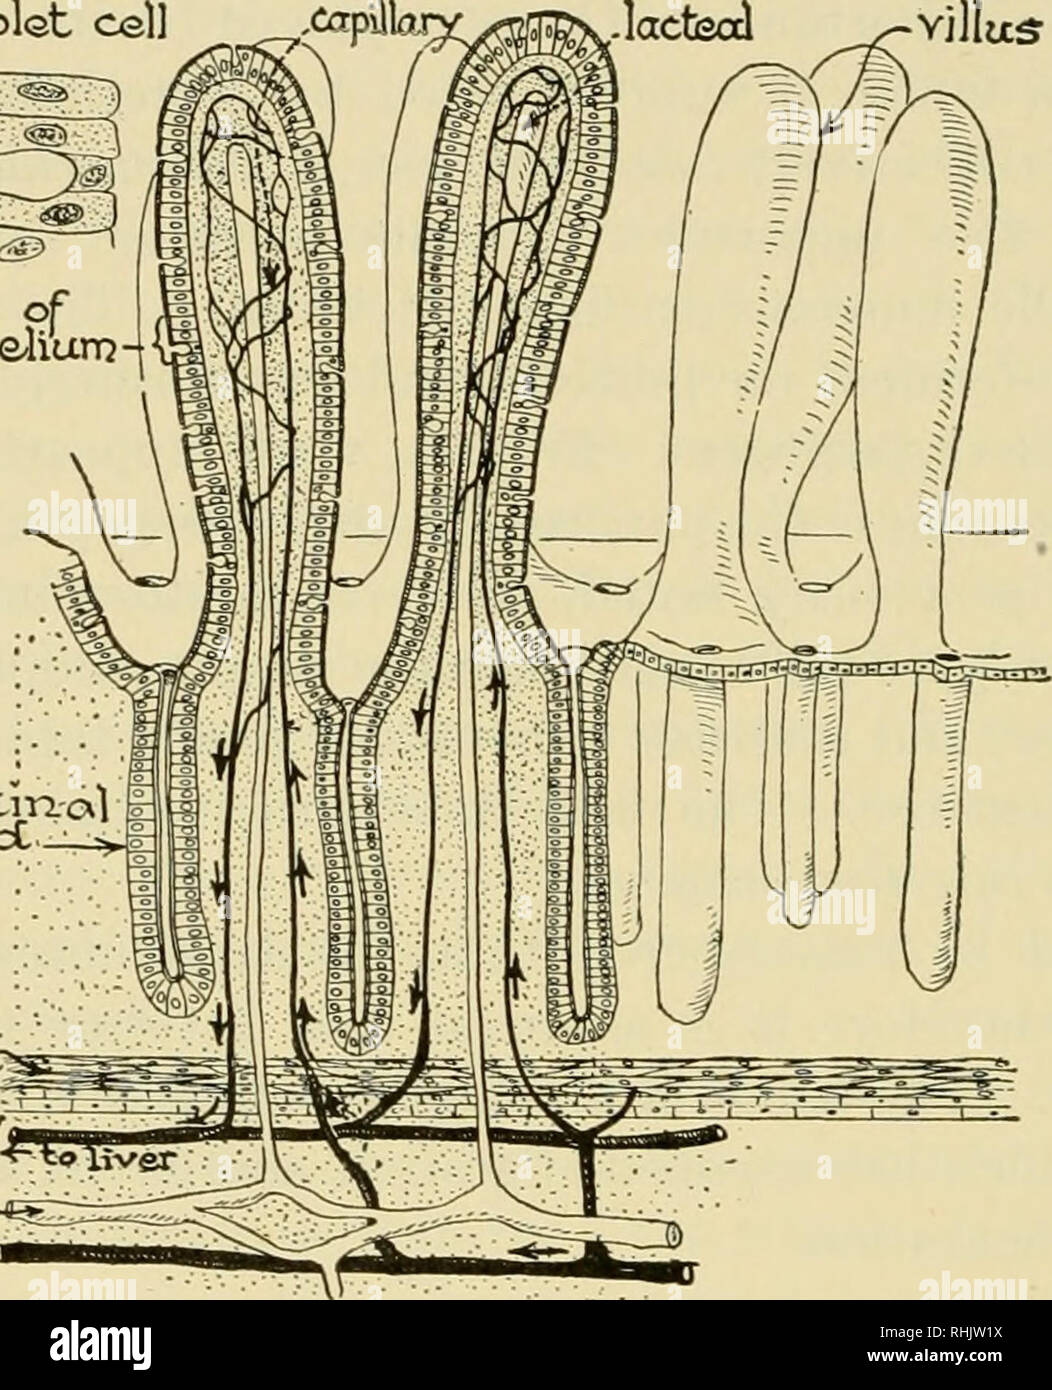 hight resolution of  biology the story of living things cells of epithaliunj intestm al glcxrjcc niuscler vein icccteal arter i diagram of intestinal villi and glands